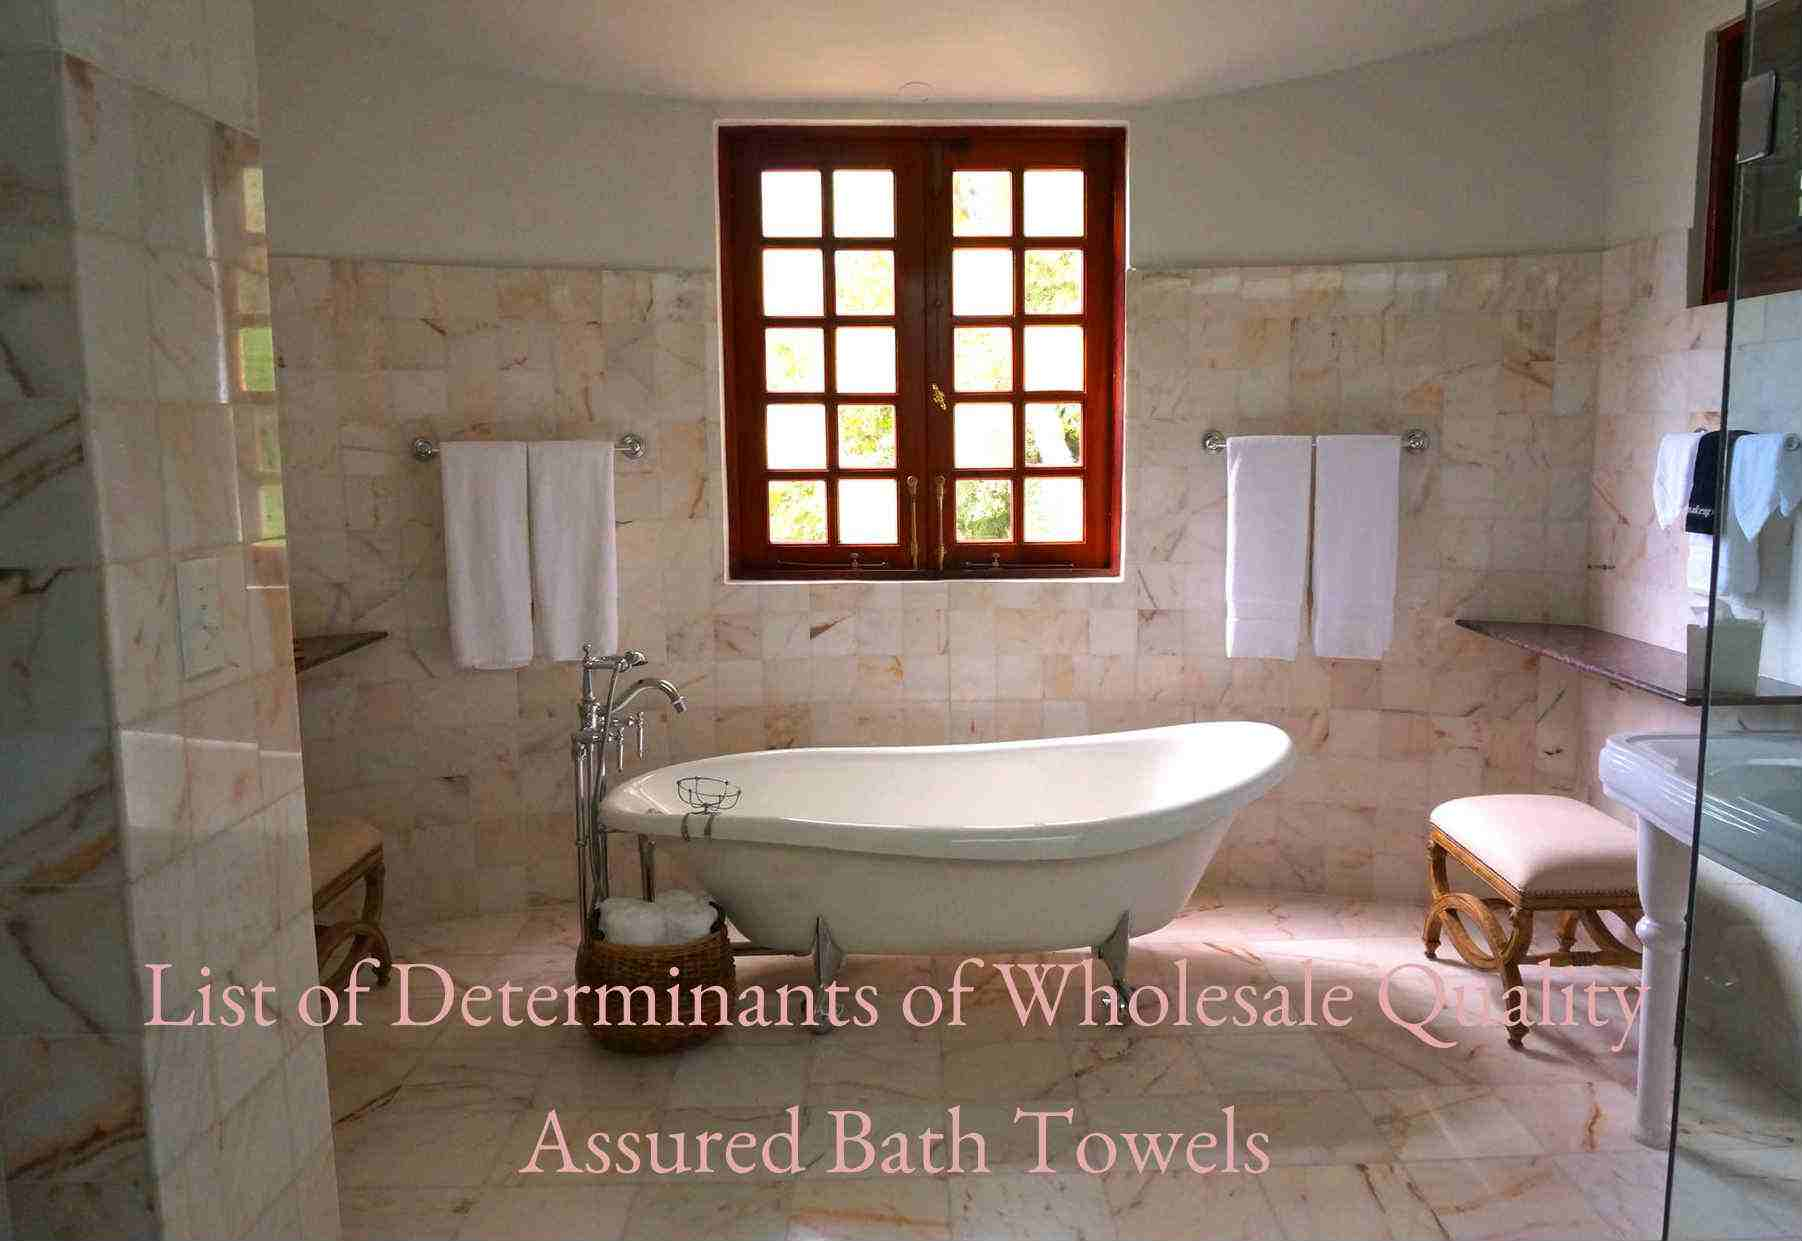 List Of Determinants Of Wholesale Quality Assured Bath Towels